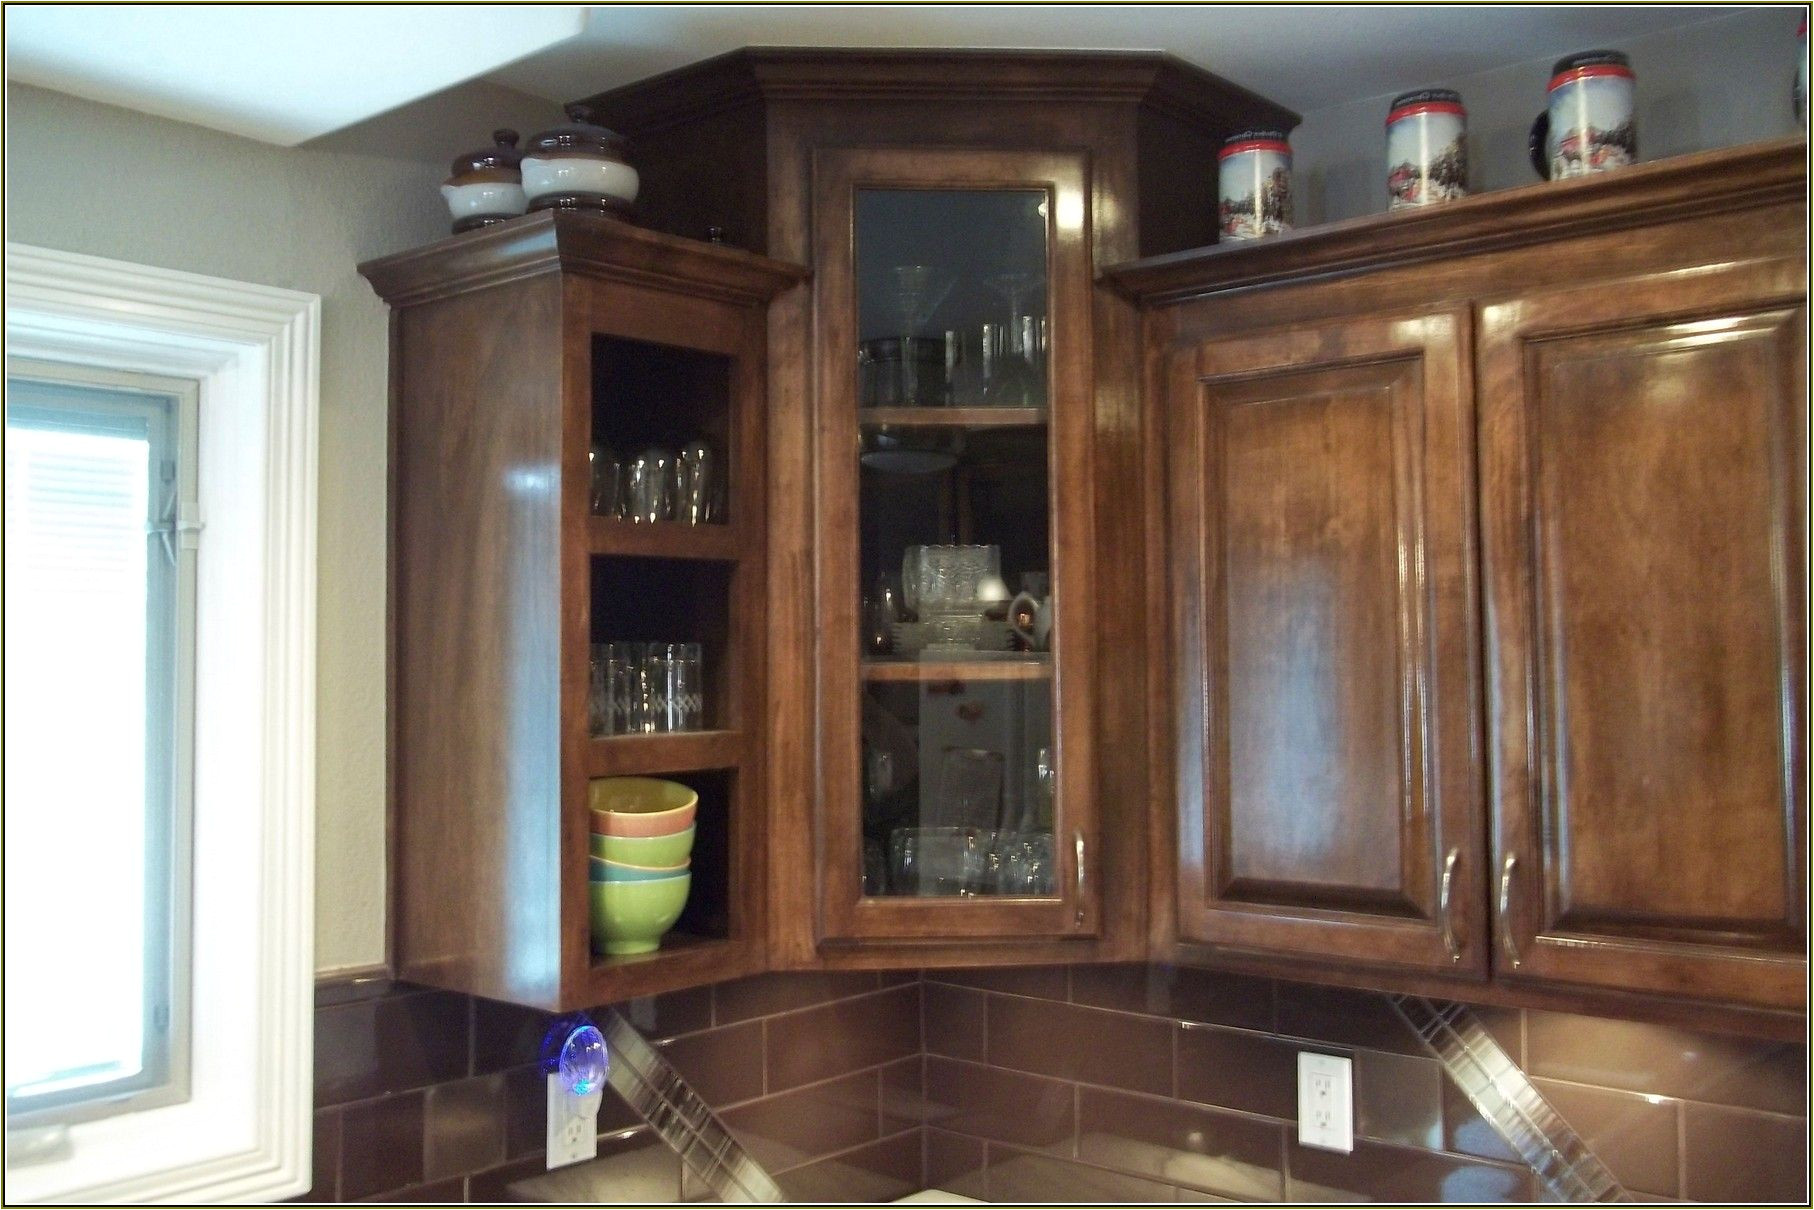 kitchen cabinets upper corner kitchen cupboard doors kitchen cabinet storage modern kitchen cabinets